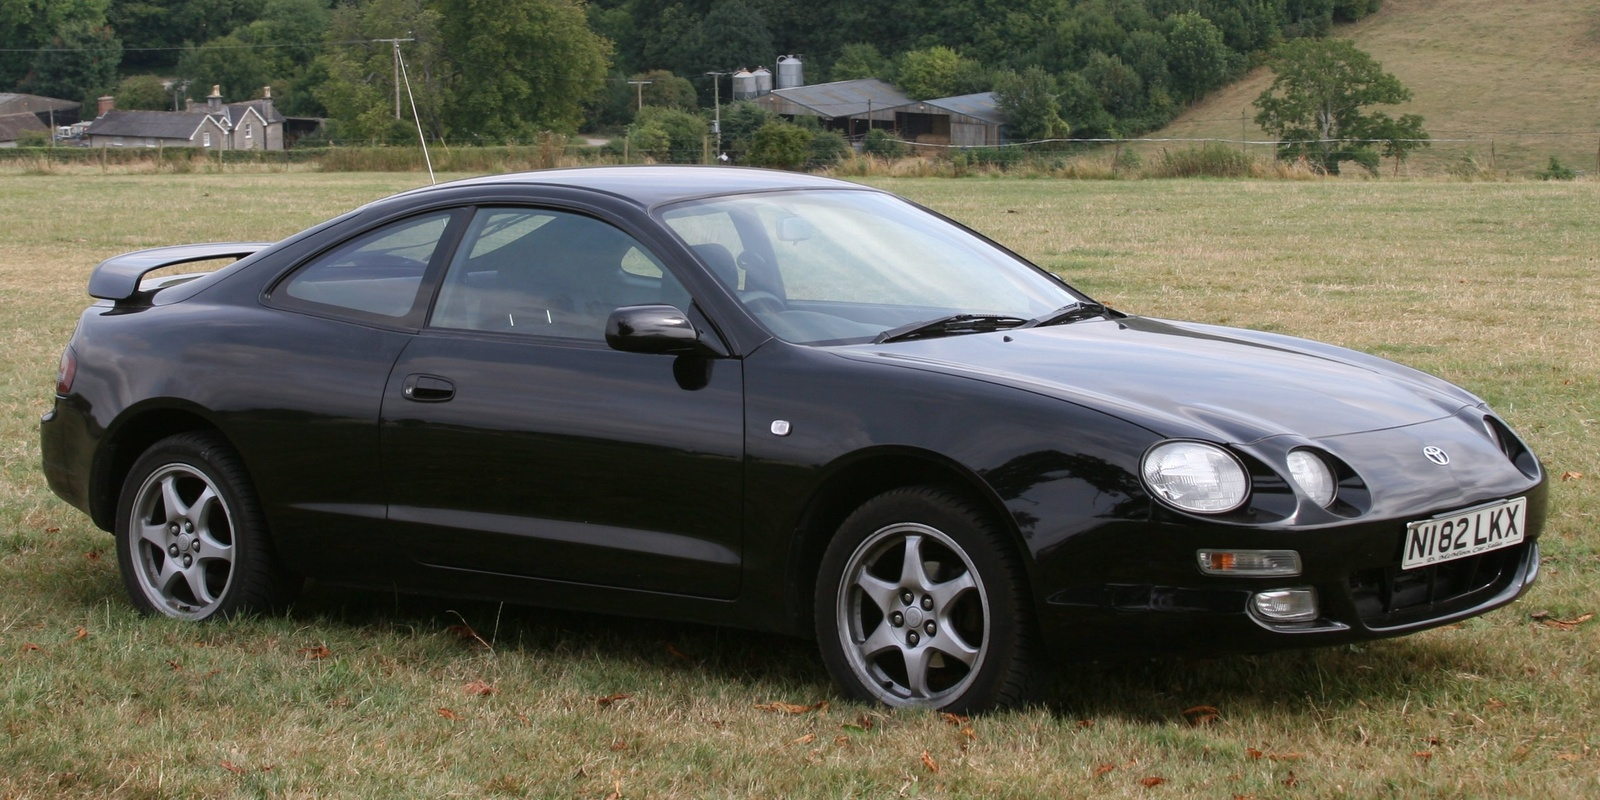 Toyota Celica 1 6 2013 Specs And Images as well  also 2771 Tuning Volkswagen Passat Cc as well 1506 2jz Powered 74 Mercedes 240d further Toyota Camry. on toyota celica engine